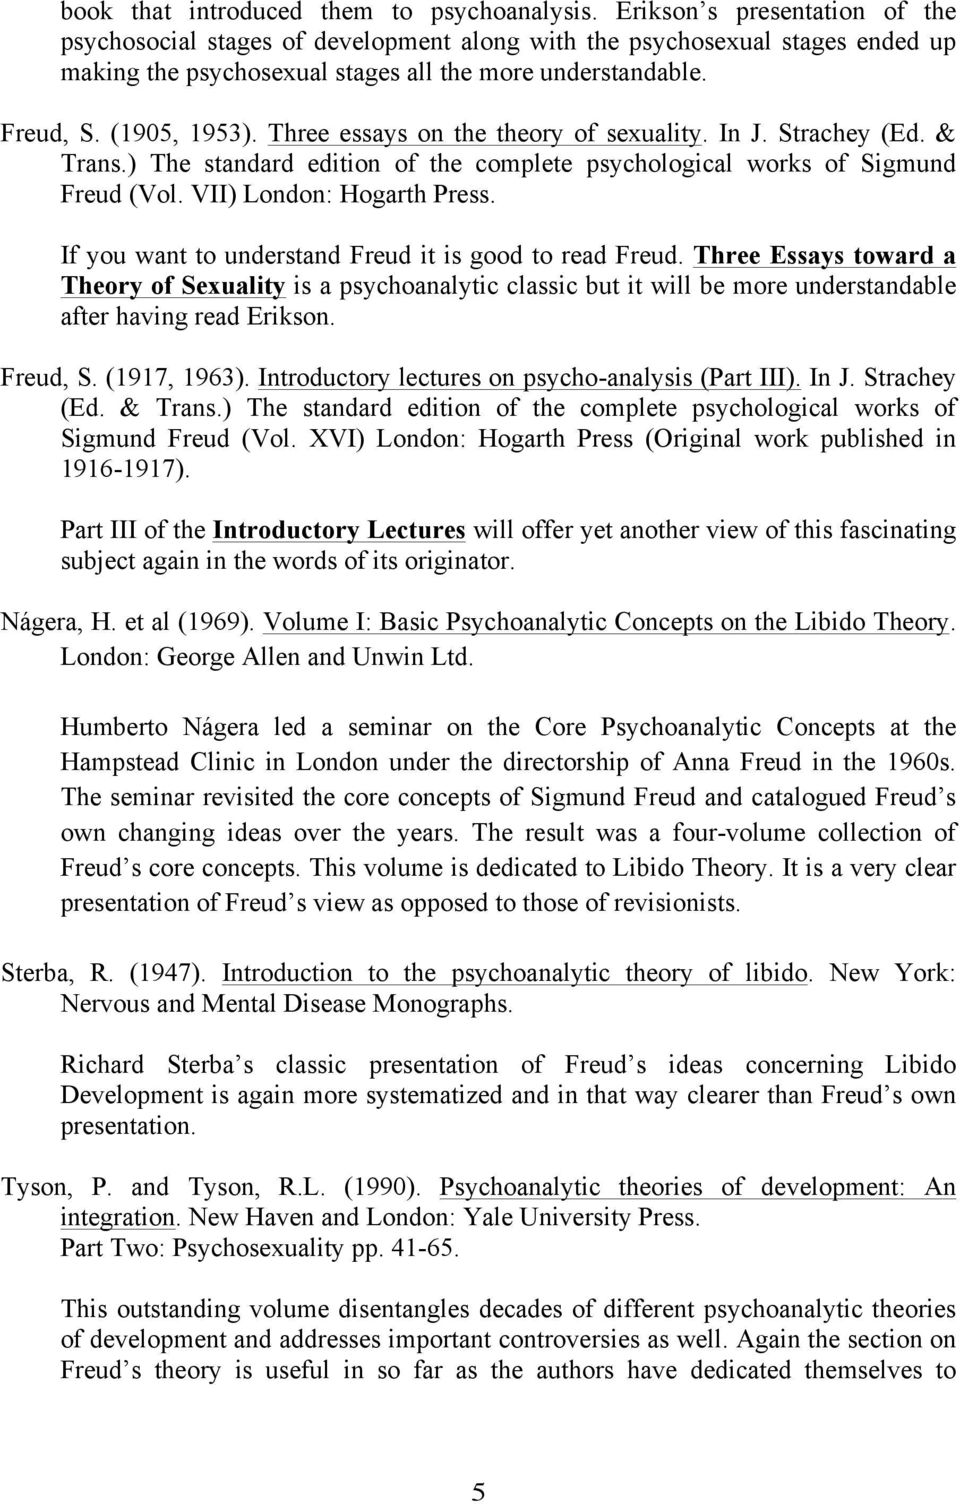 Freuds psychosexual stages worksheet